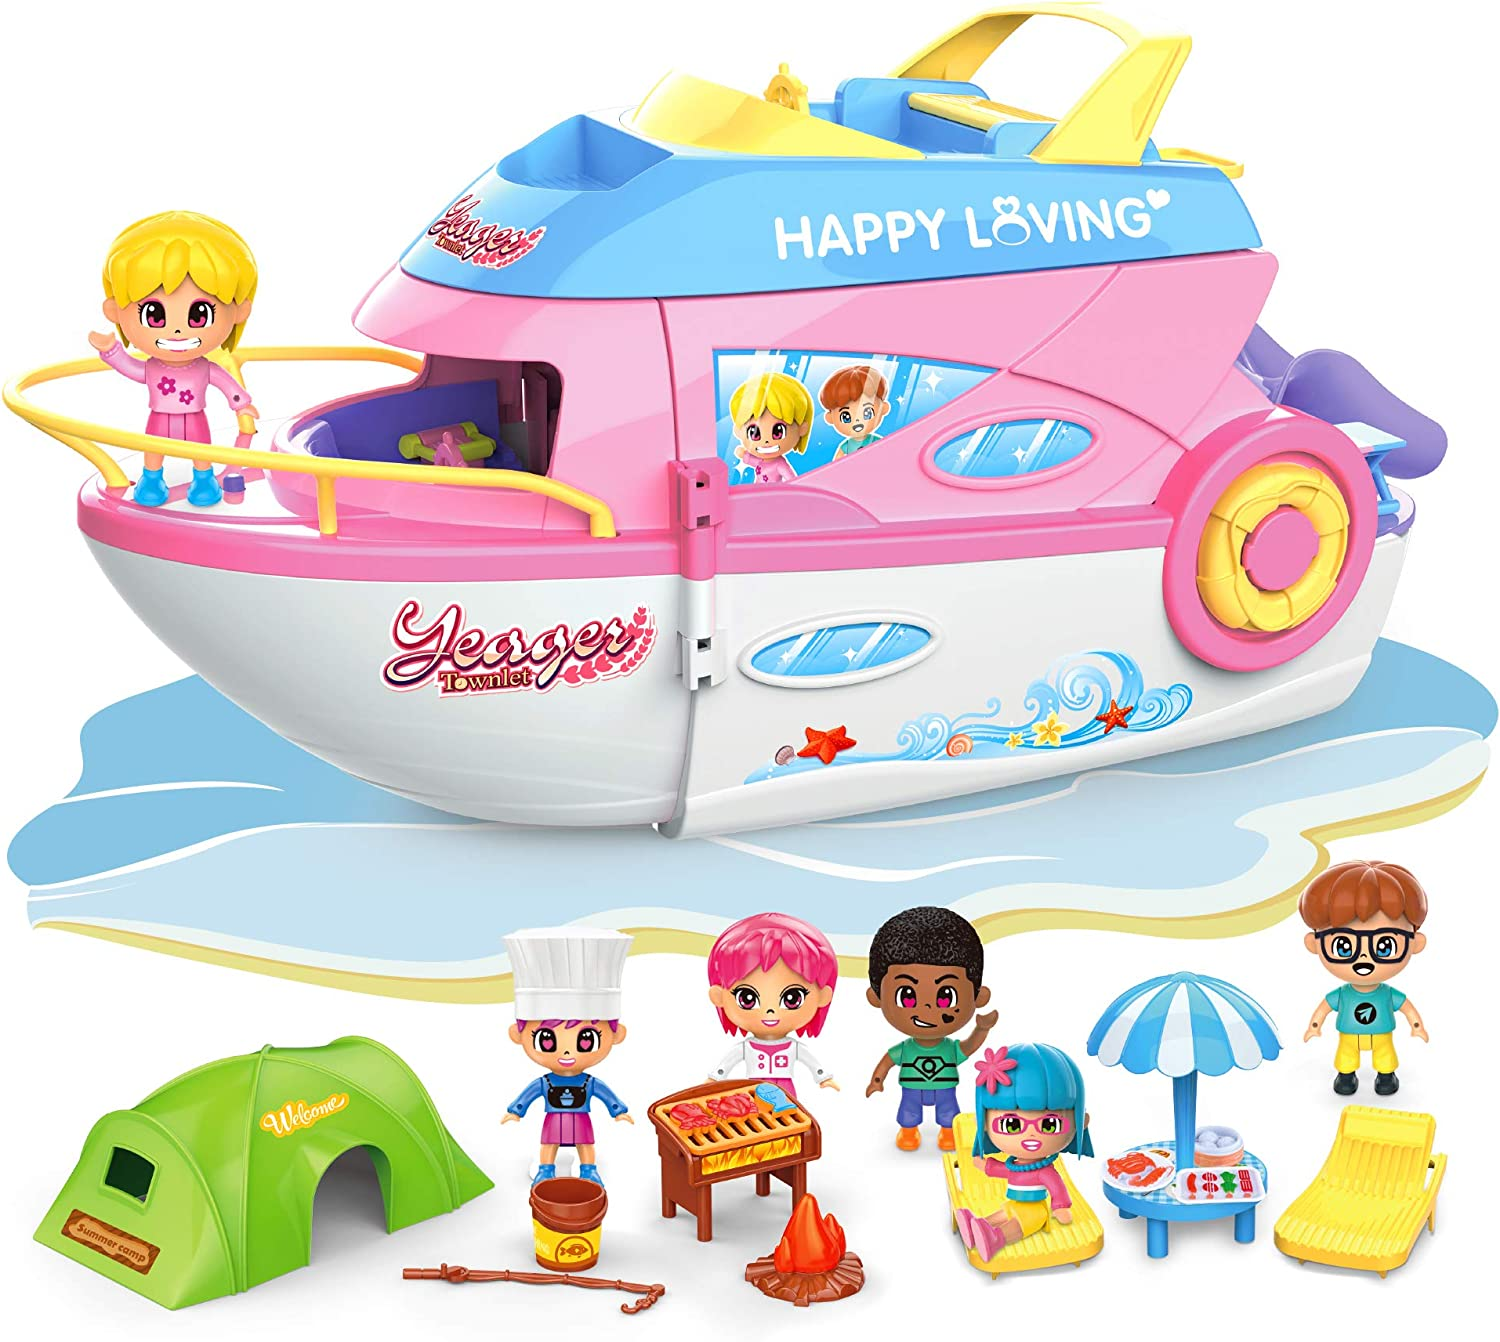 iPlay, iLearn Doll Playset, Girls Doll House, Pretend Play Toys Set, Cruise Ship Dollhouse W/ Boat, Camper, Grill Tool, Figures & Furniture Accessories, for 3 4 5 6 Year Olds Kids Girls Toddlers